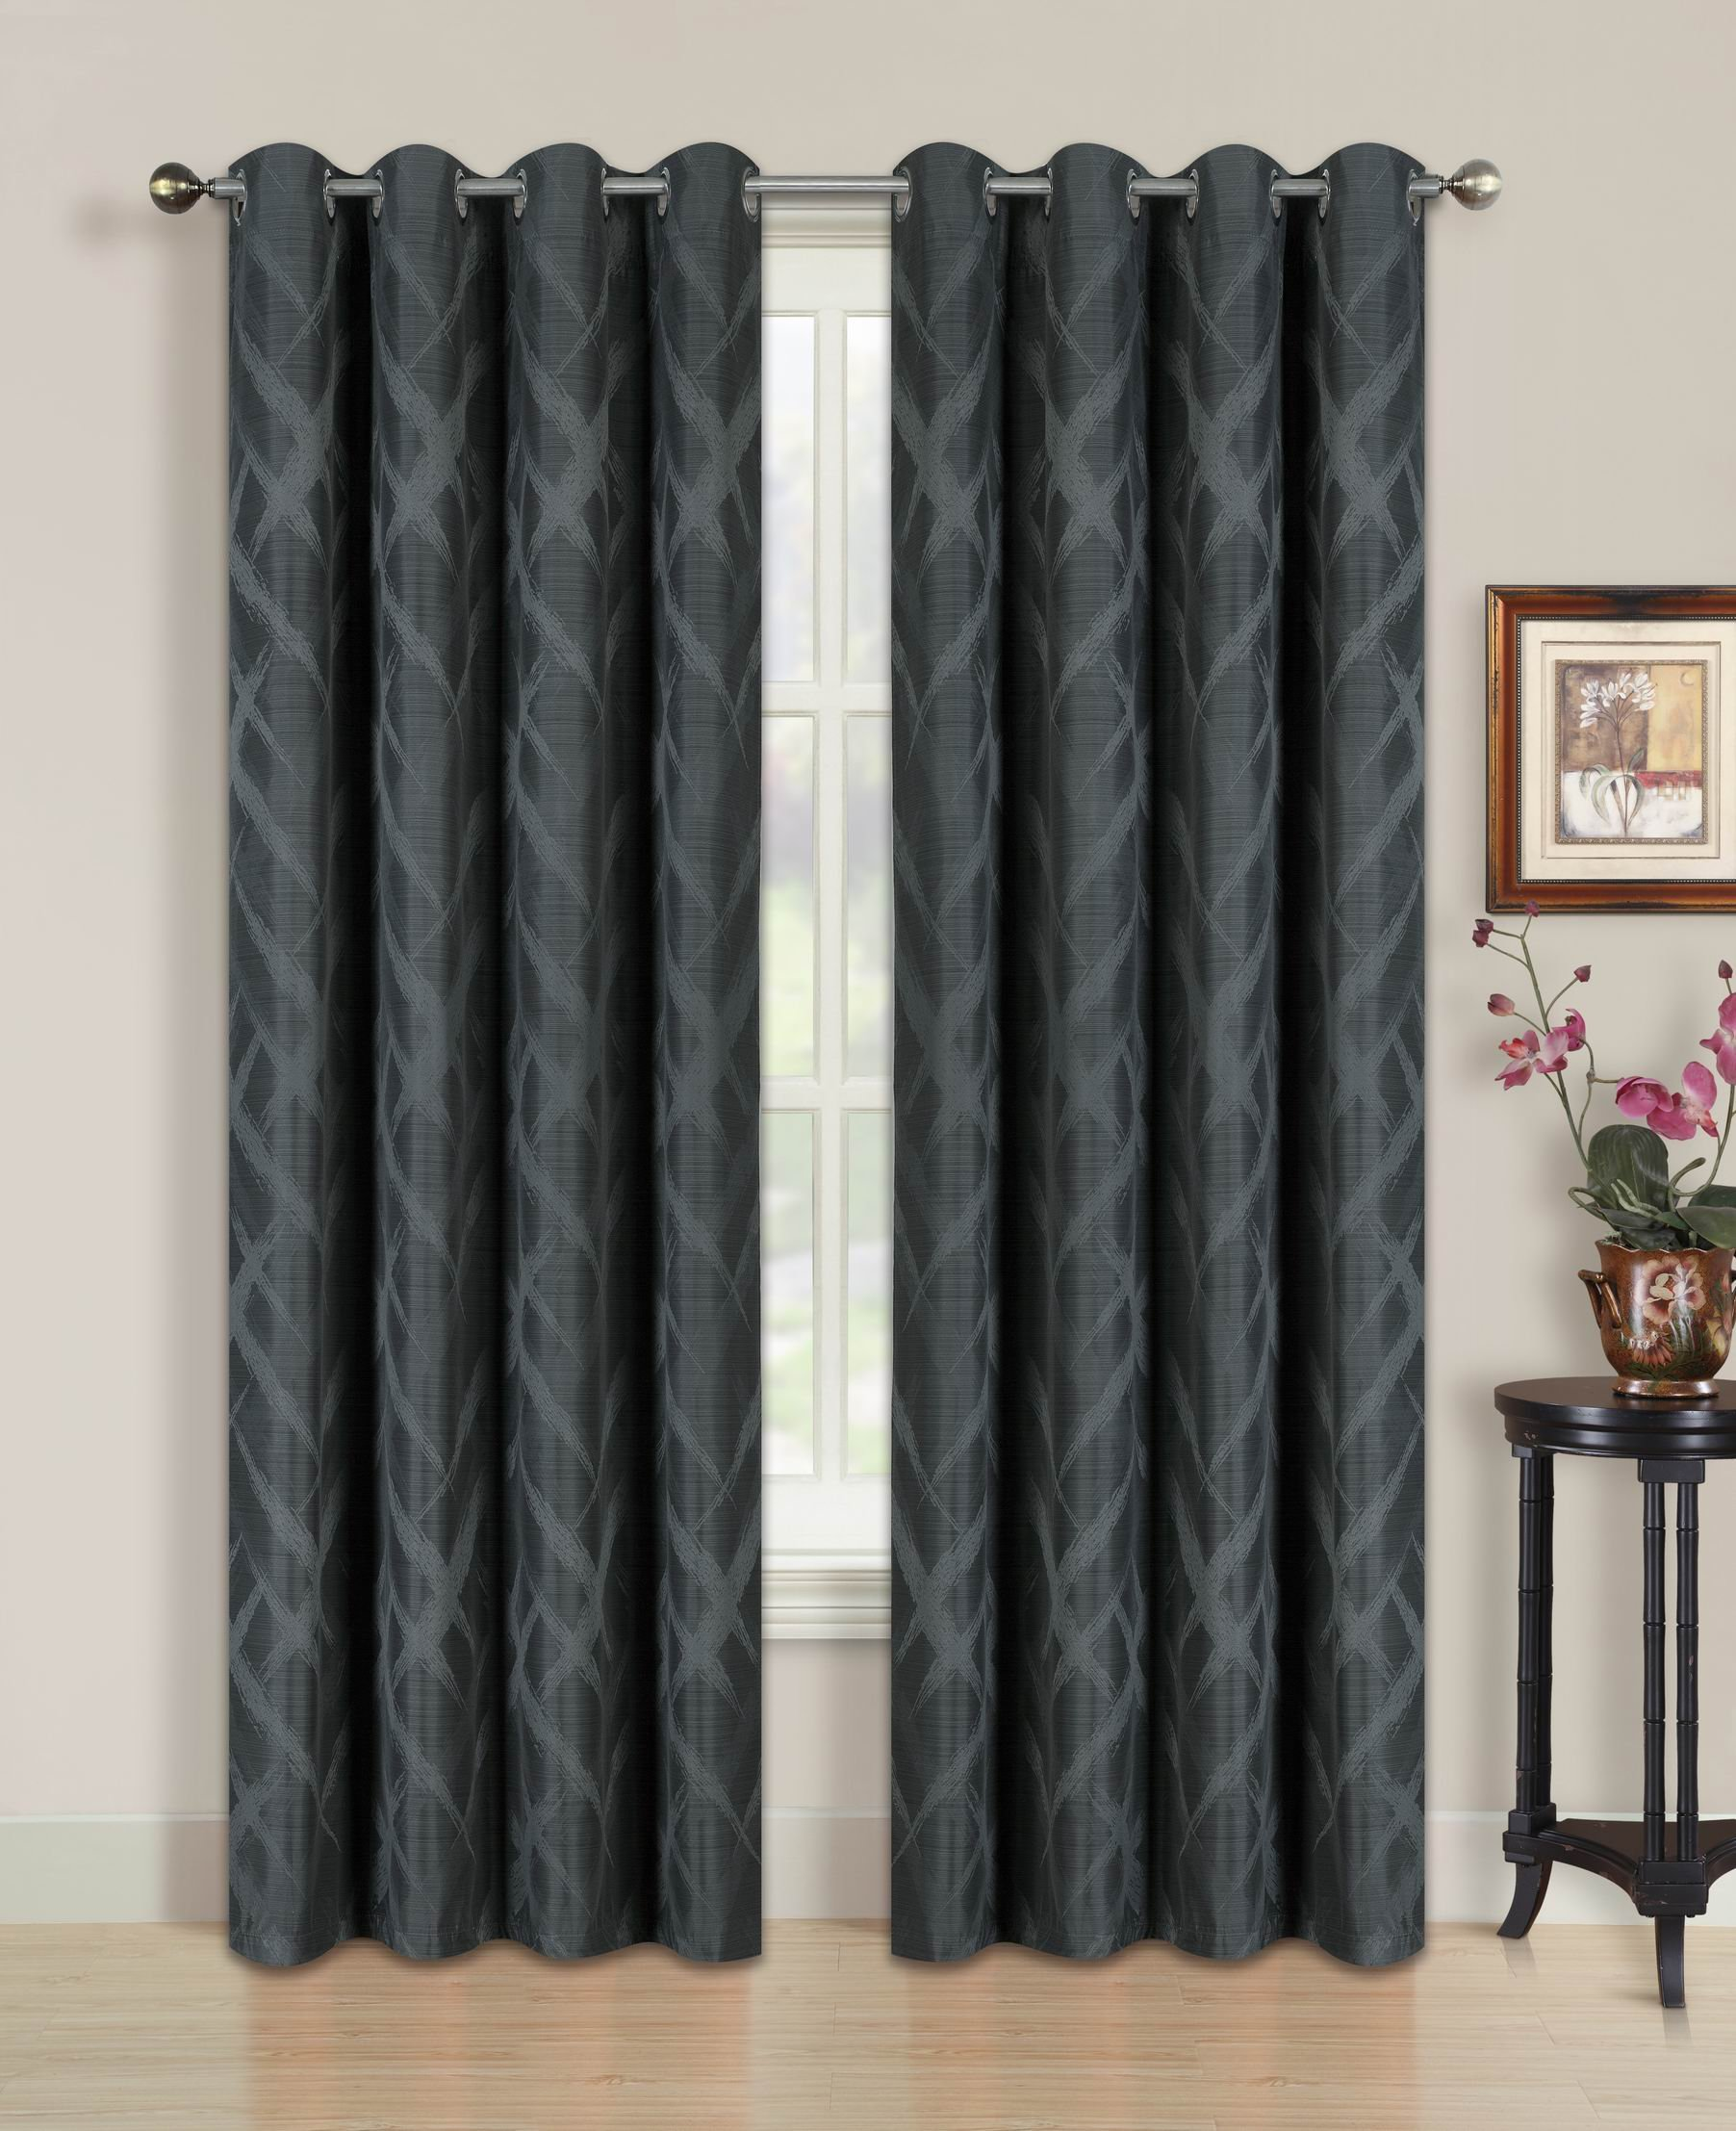 All American Collection Blackout Curtain with Brushed Diamond Pattern | 84'' Length | Grommet Design